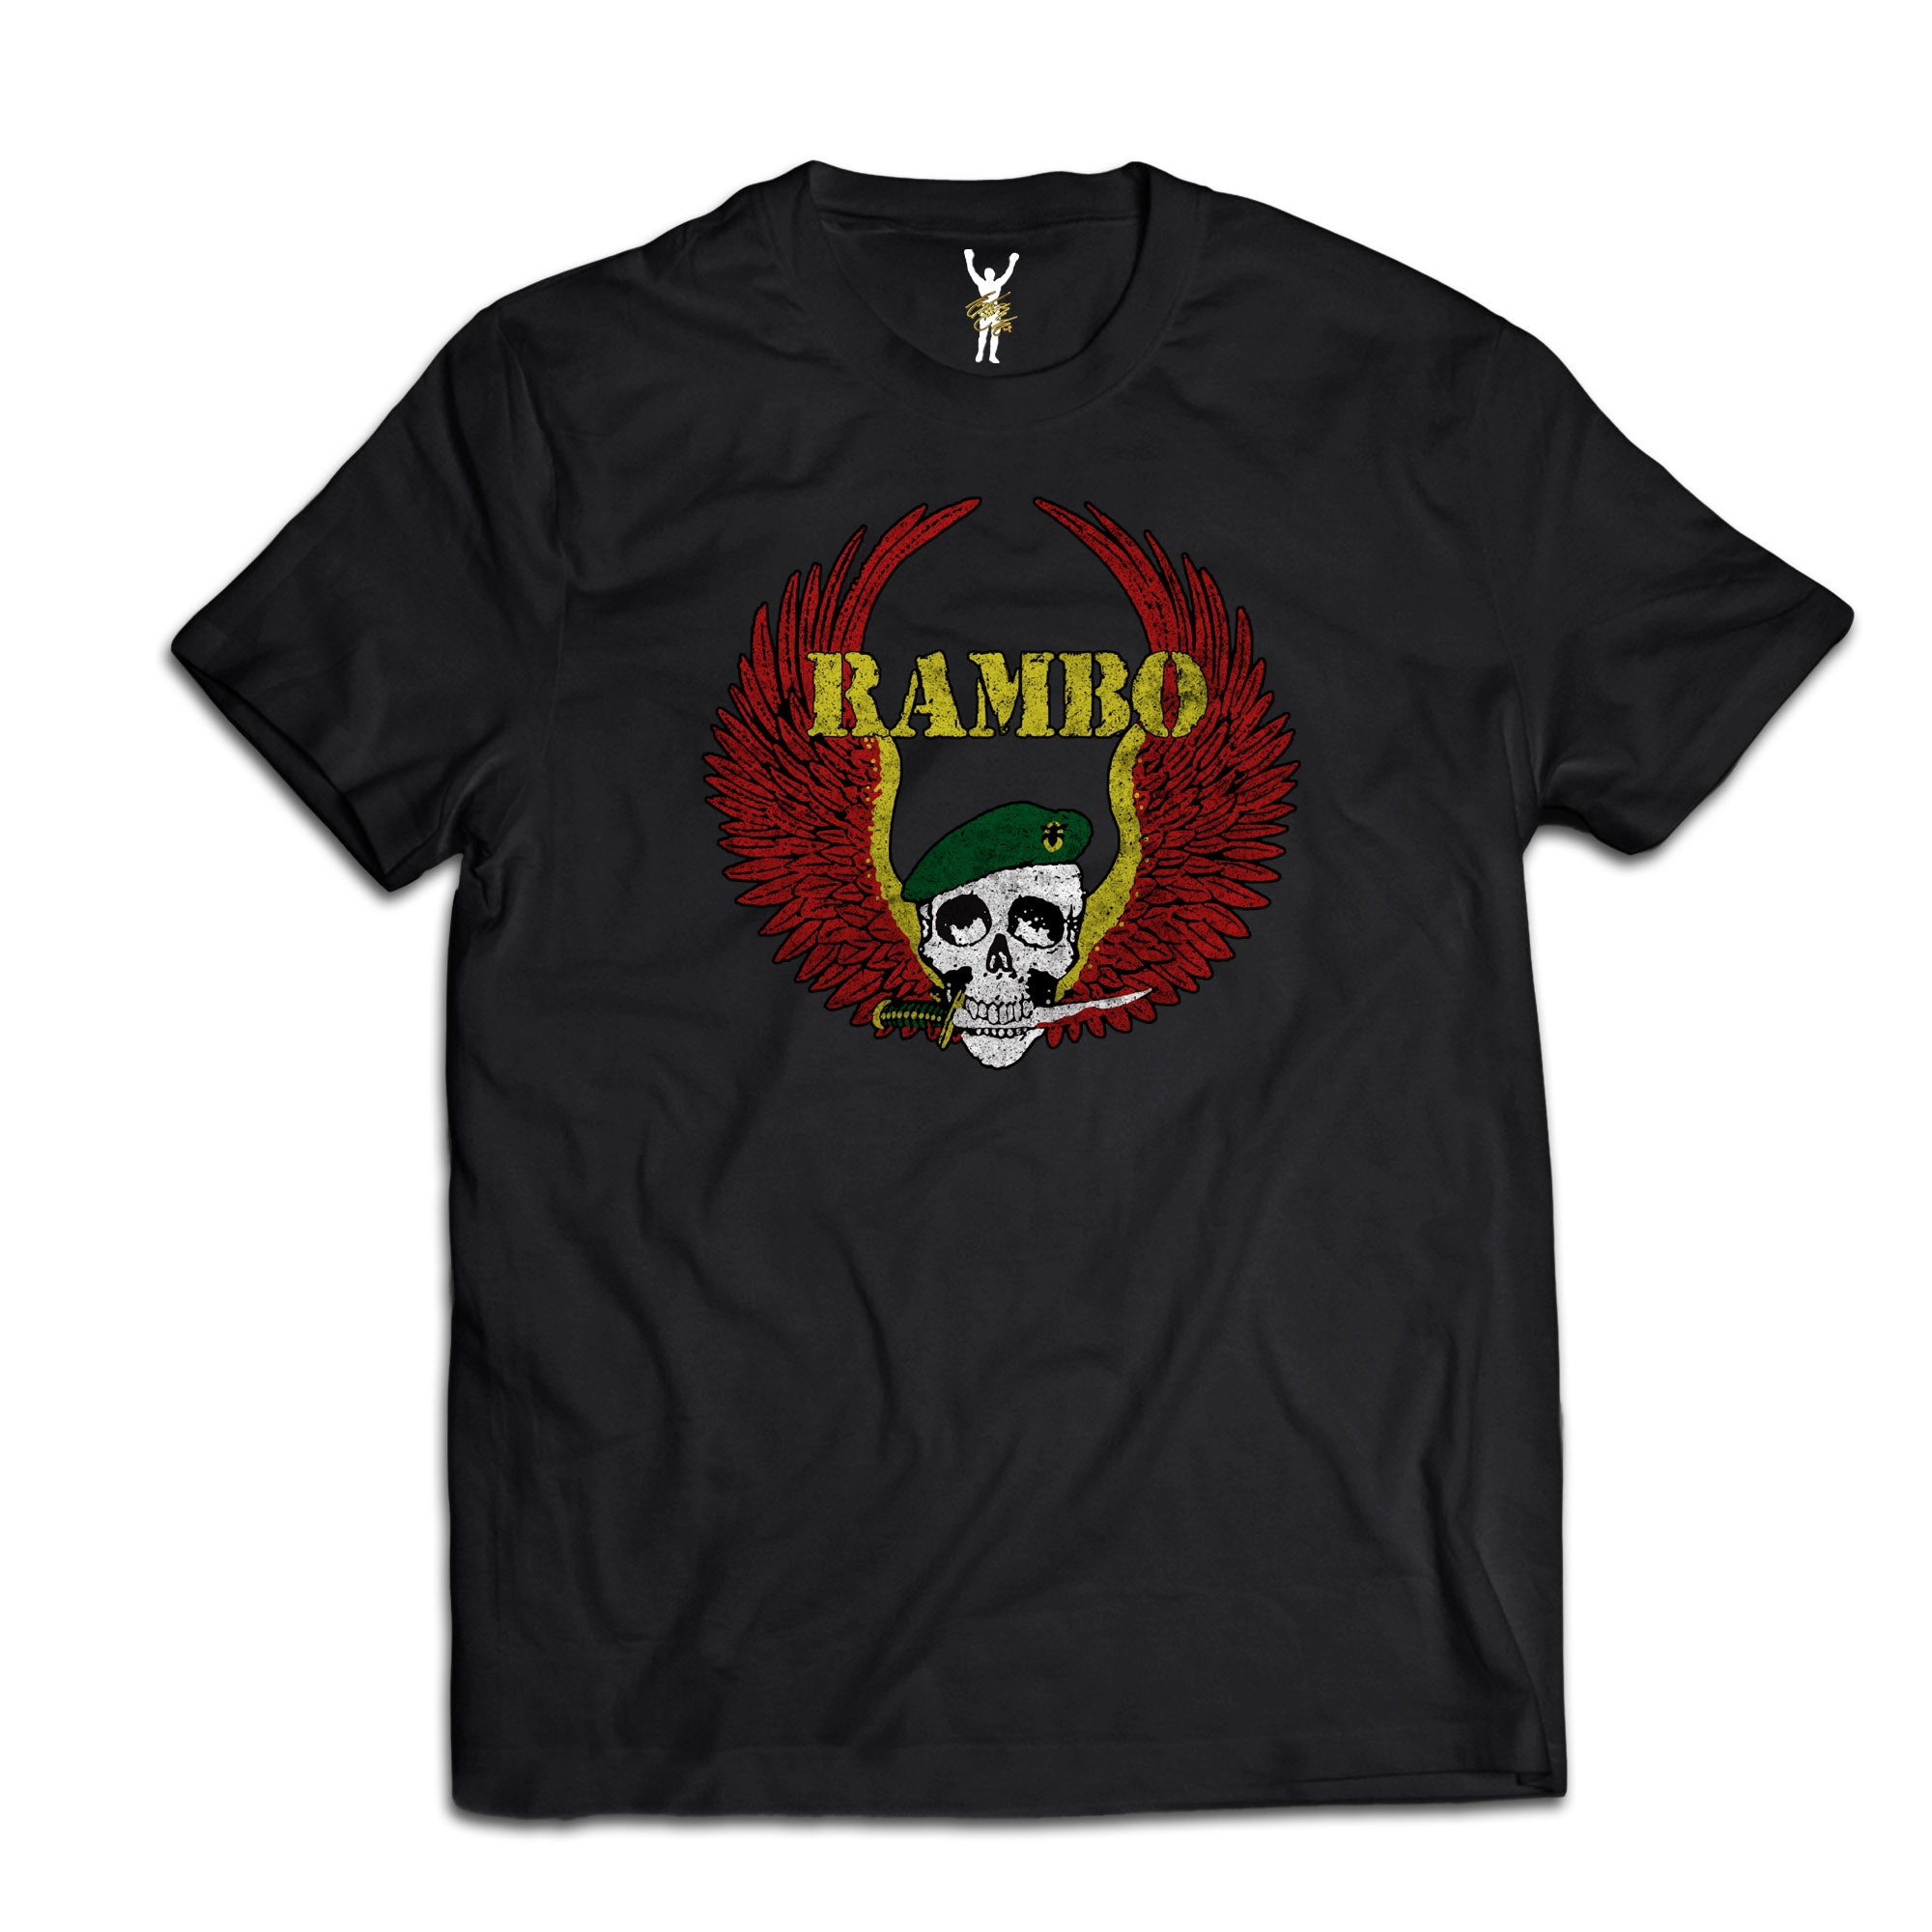 Rambo Cast & Crew Black Tee